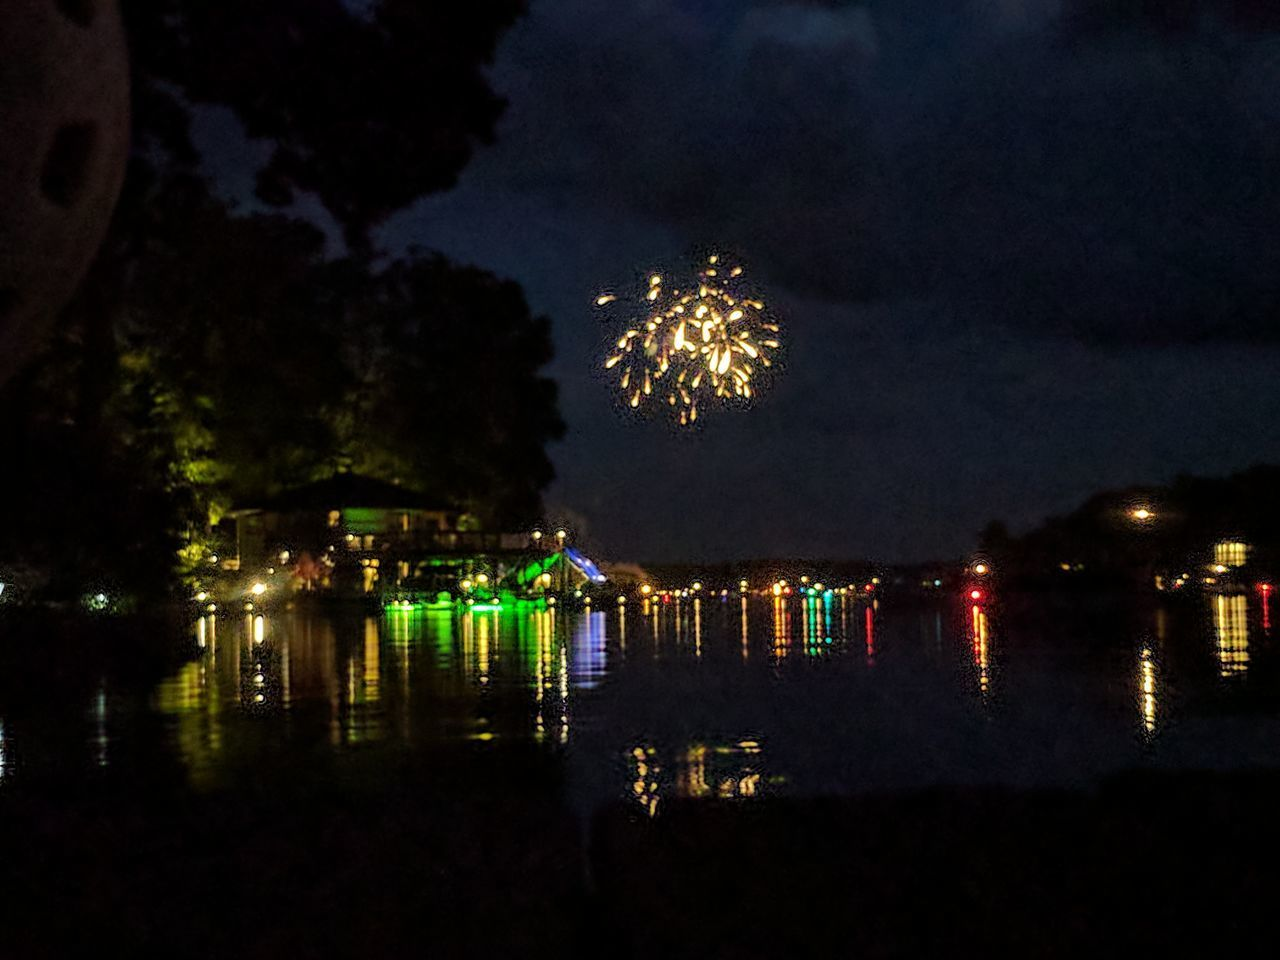 Night Exploding Firework Display Celebration Firework - Man Made Object Sky Reflection Arts Culture And Entertainment Illuminated Water No People Outdoors Multi Colored Beach Reflection Cityscape Landscape Ferris Wheel Tree City Boats Lights